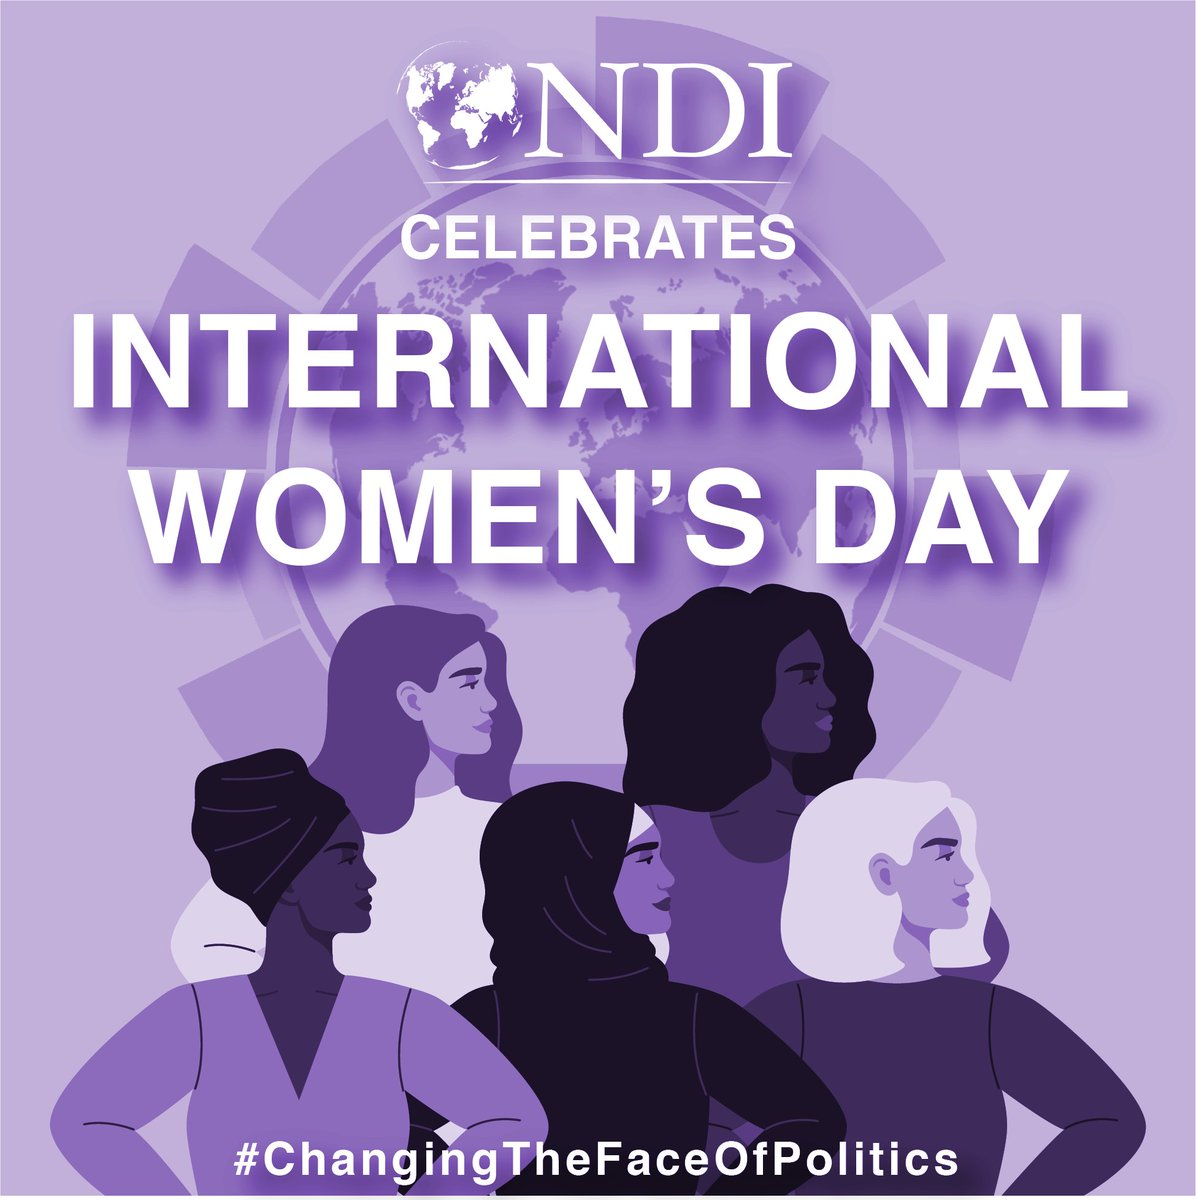 Happy #InternationalWomensDay  from @NDI's Gender, Women and Democracy team!   Today we are celebrating all of the #PoliticalWomen♀️ who are #ChangingTheFaceOfPolitics.   https://t.co/7w0VSgFqlt https://t.co/qc239Vnmwk